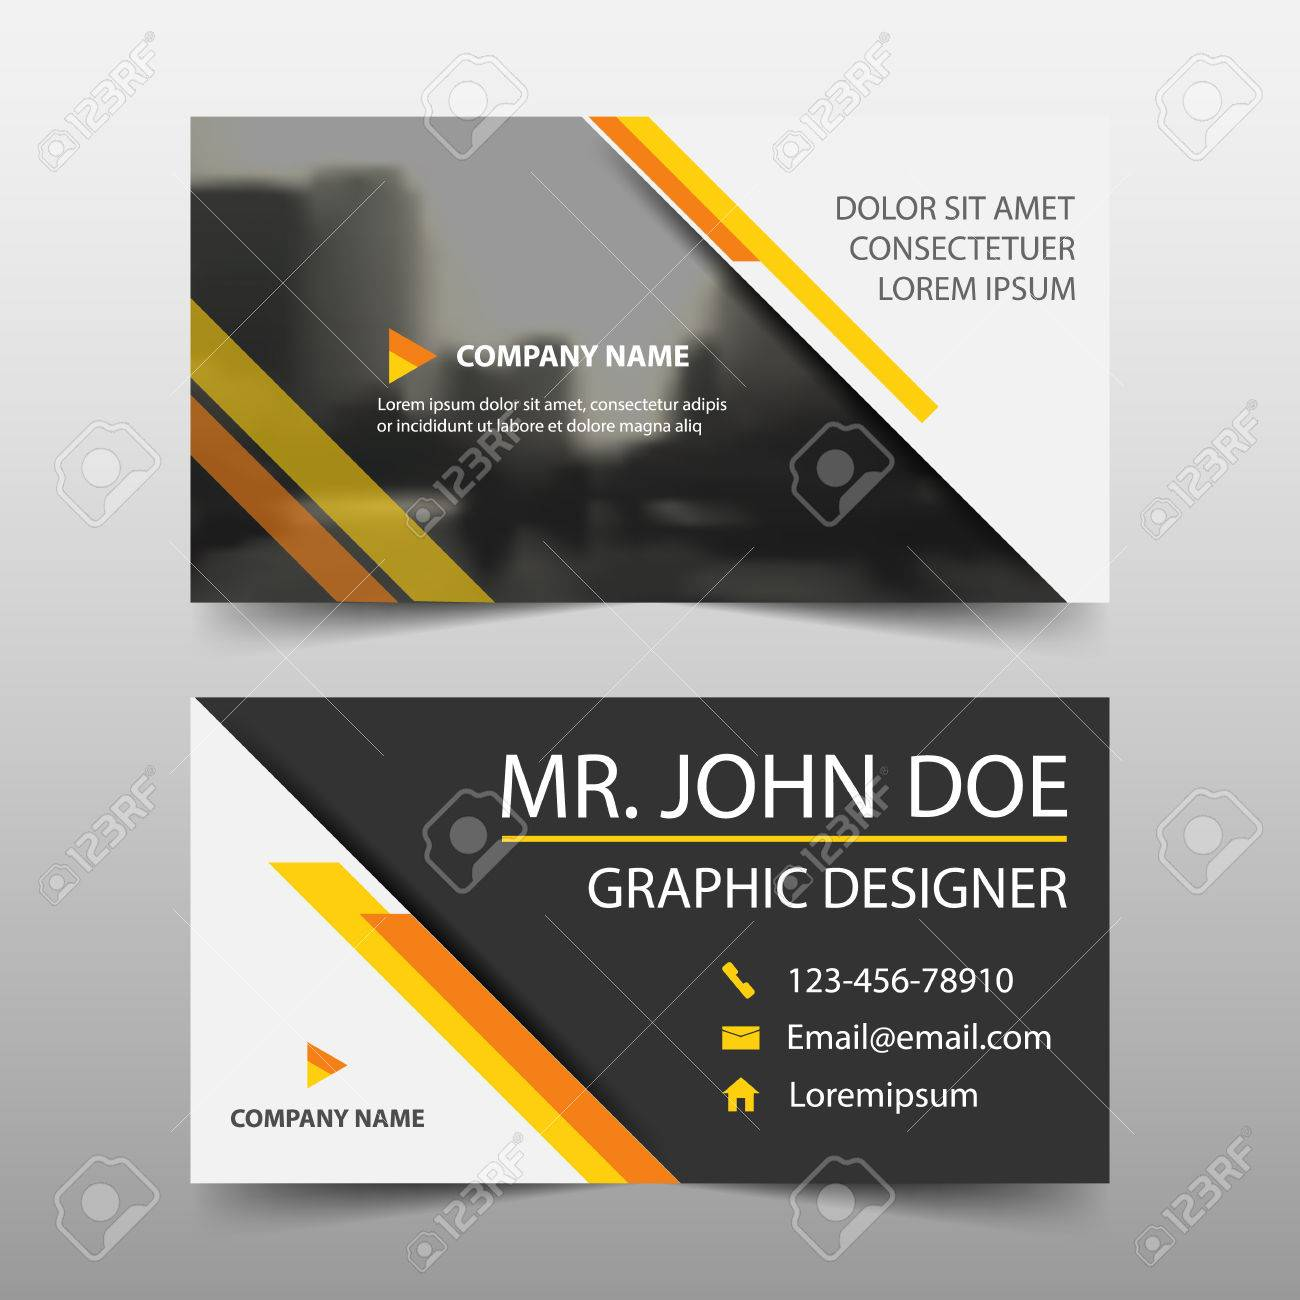 Yellow corporate business card name card template horizontal vector yellow corporate business card name card template horizontal simple clean layout design template business banner template for website fbccfo Gallery